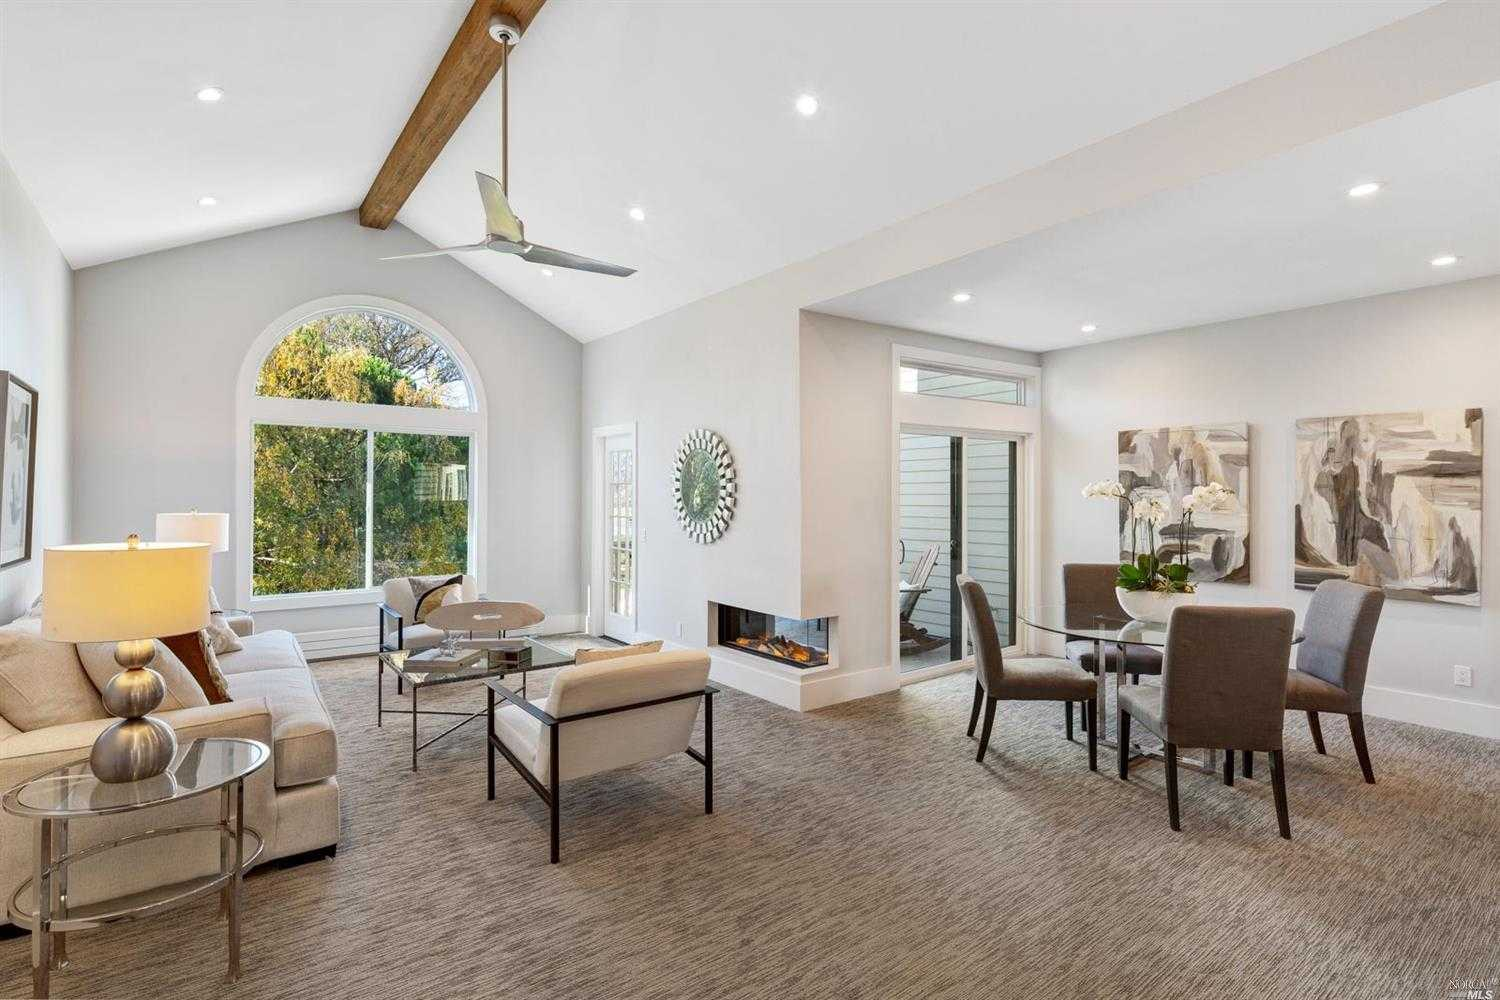 $1,298,000 - 2Br/2Ba -  for Sale in Eucalyptus Knoll, Mill Valley